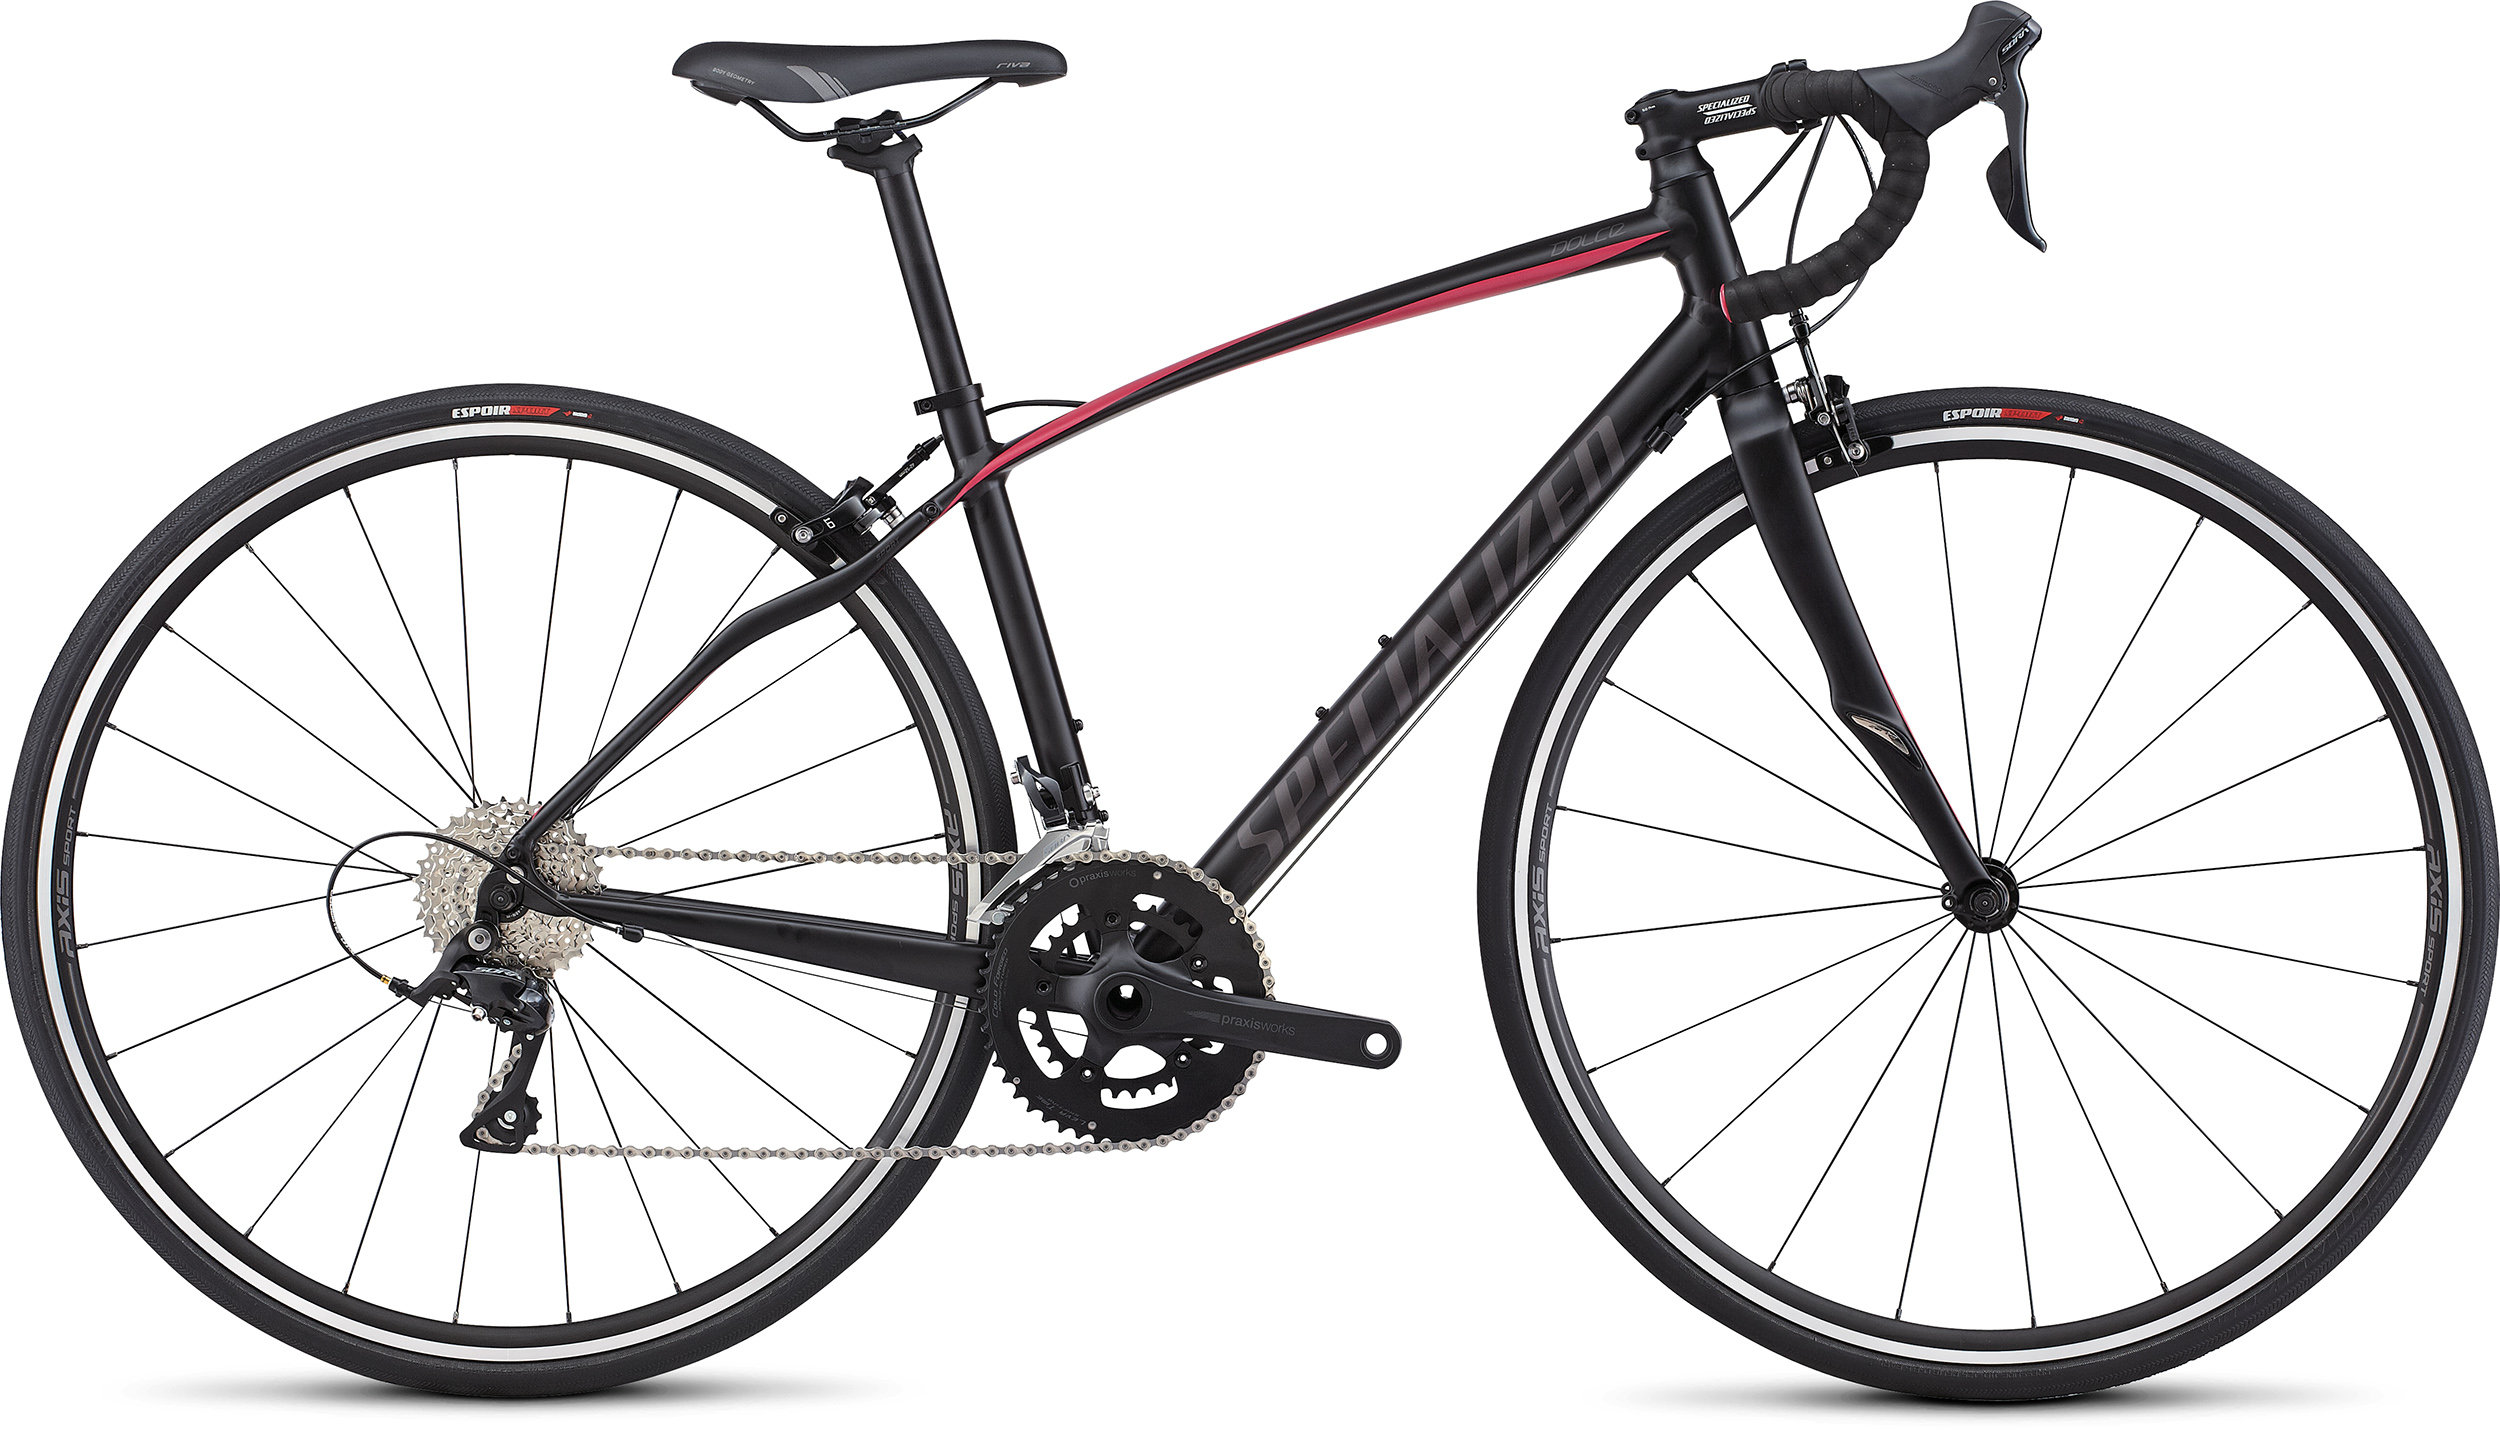 SPECIALIZED DOLCE SPORT TARBLK/RFPNK/WRMCHAR 44 - Bike Zone